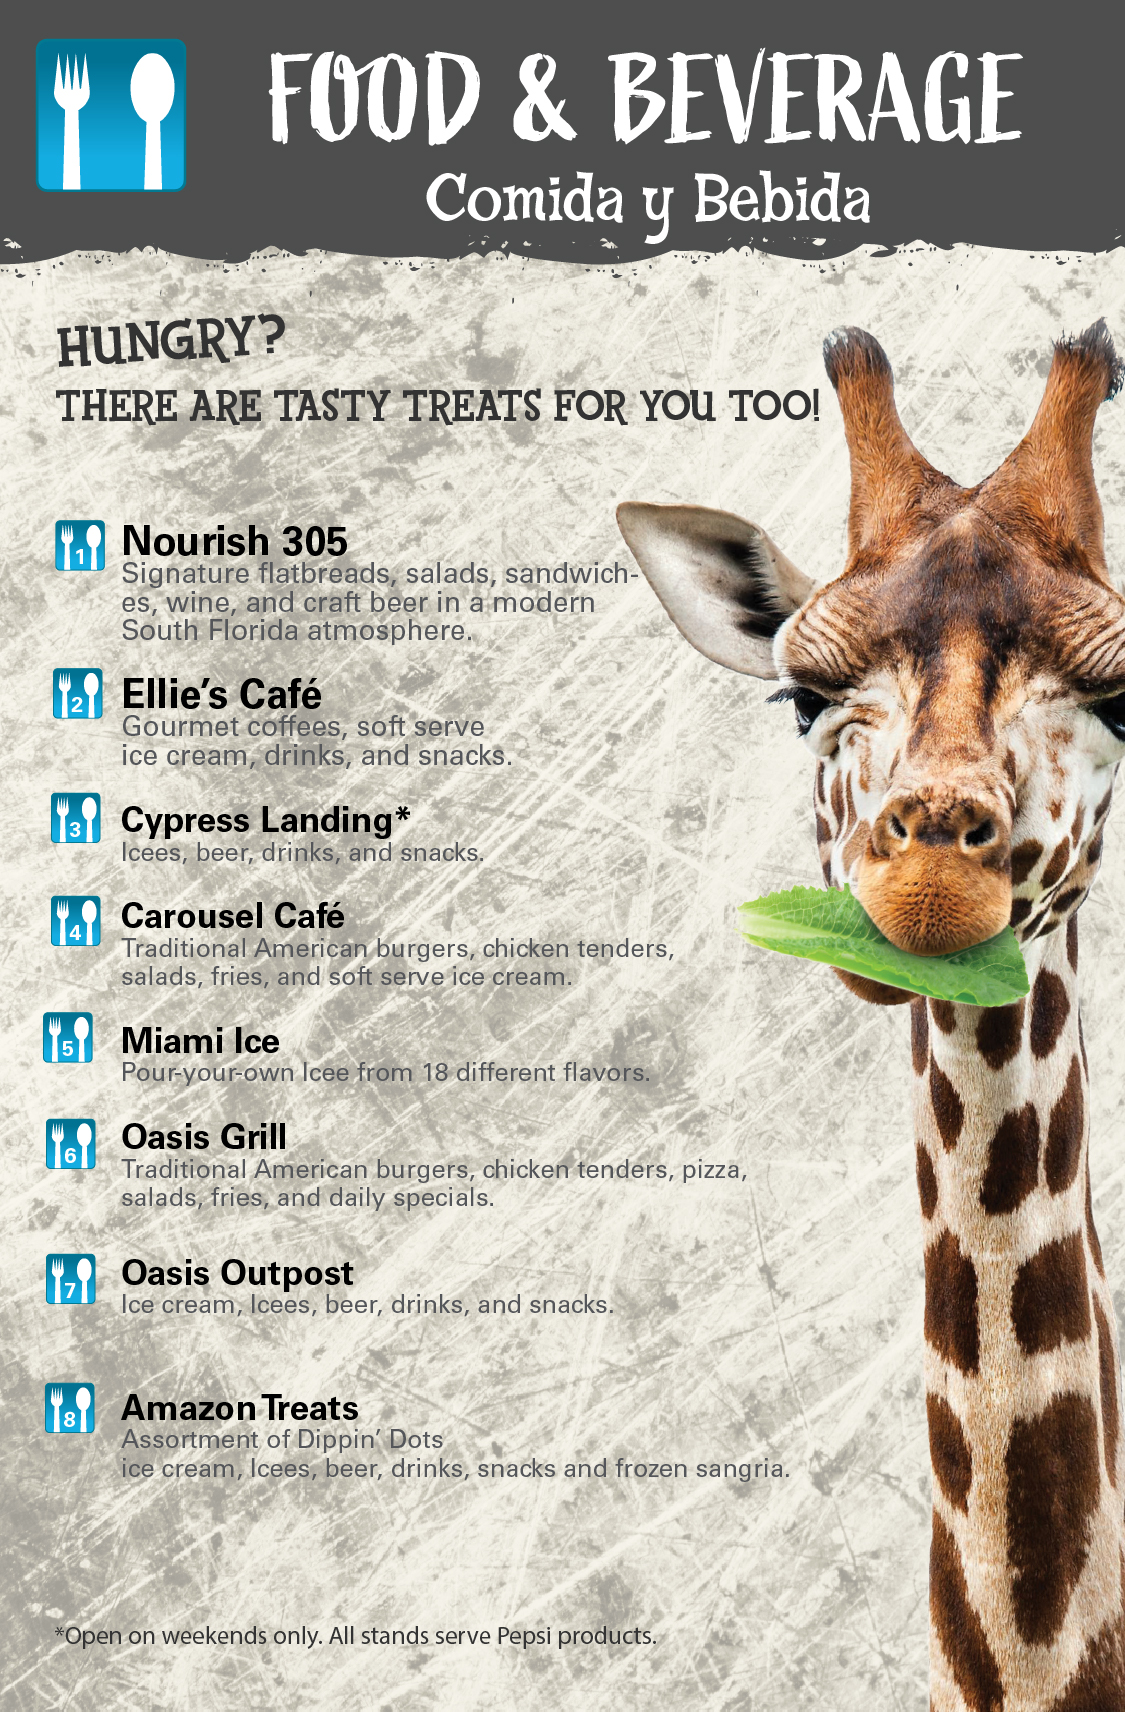 Food & Beverage - Nourish 305, Ellie's Cafe, Cypress Landing, Carousel Cafe, Miami Ice, Oasis Grille, and Oasis Outpost